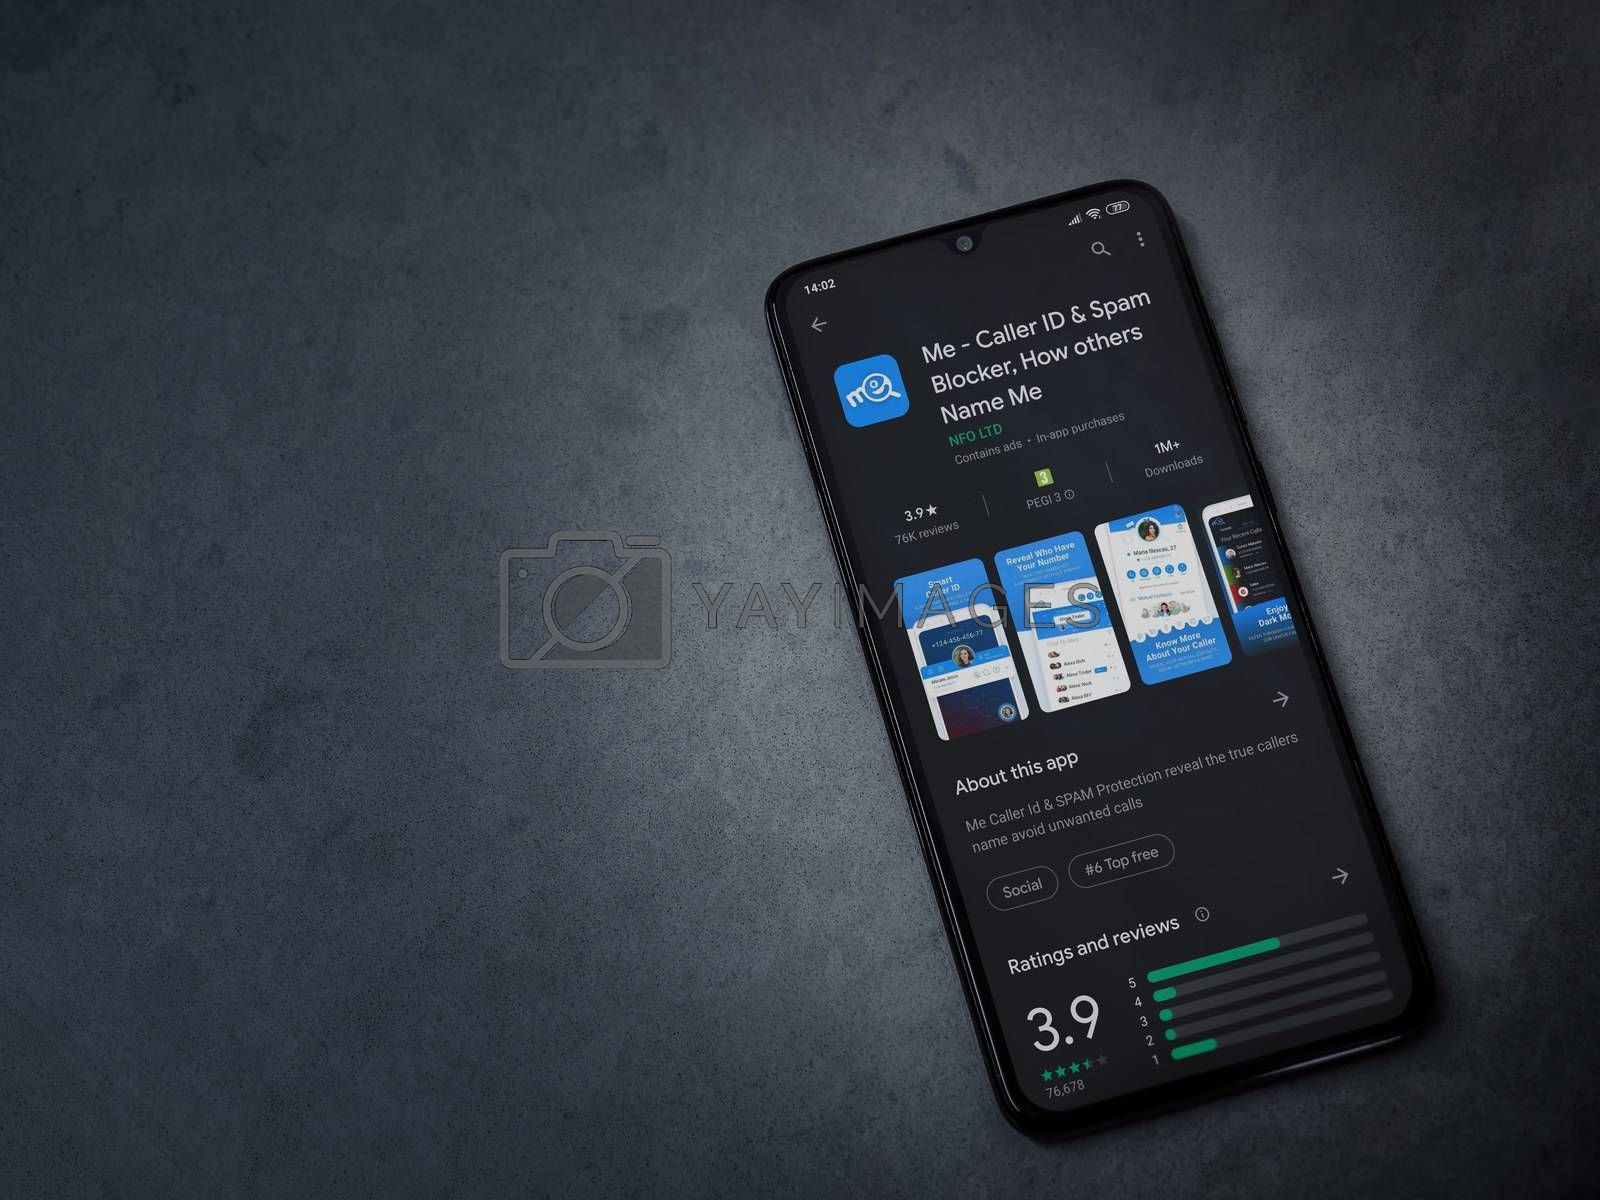 Lod, Israel - July 8, 2020: Me app play store page on the display of a black mobile smartphone on dark marble stone background. Top view flat lay with copy space.